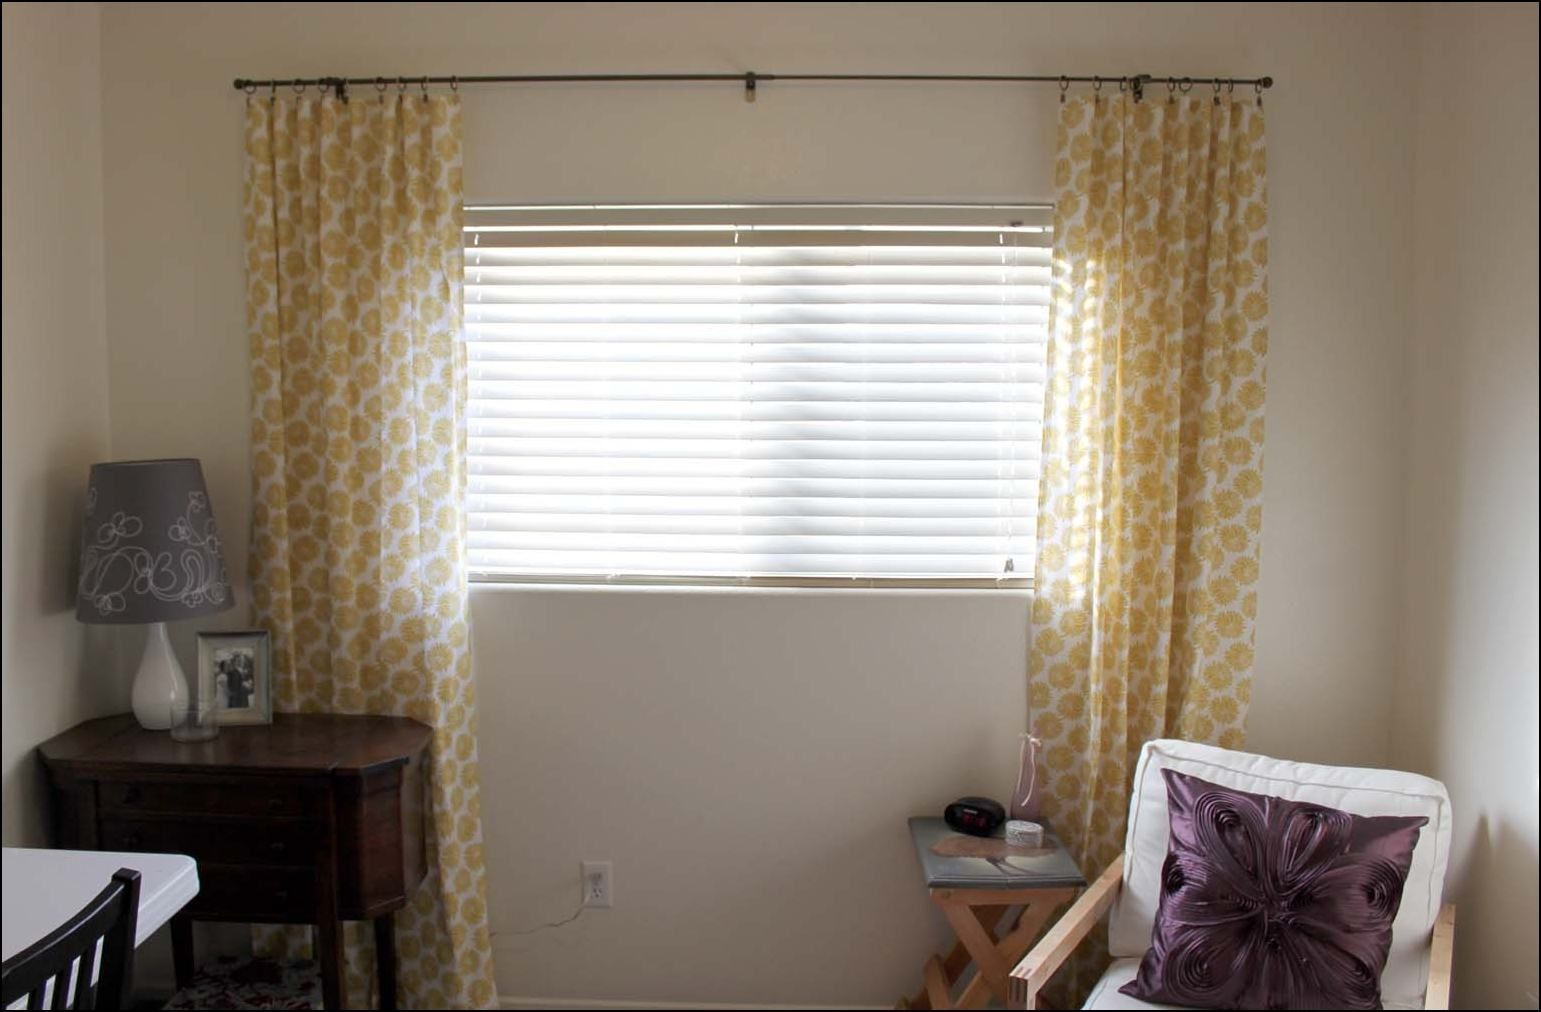 Curtains for small long windows realtagfo pinterest